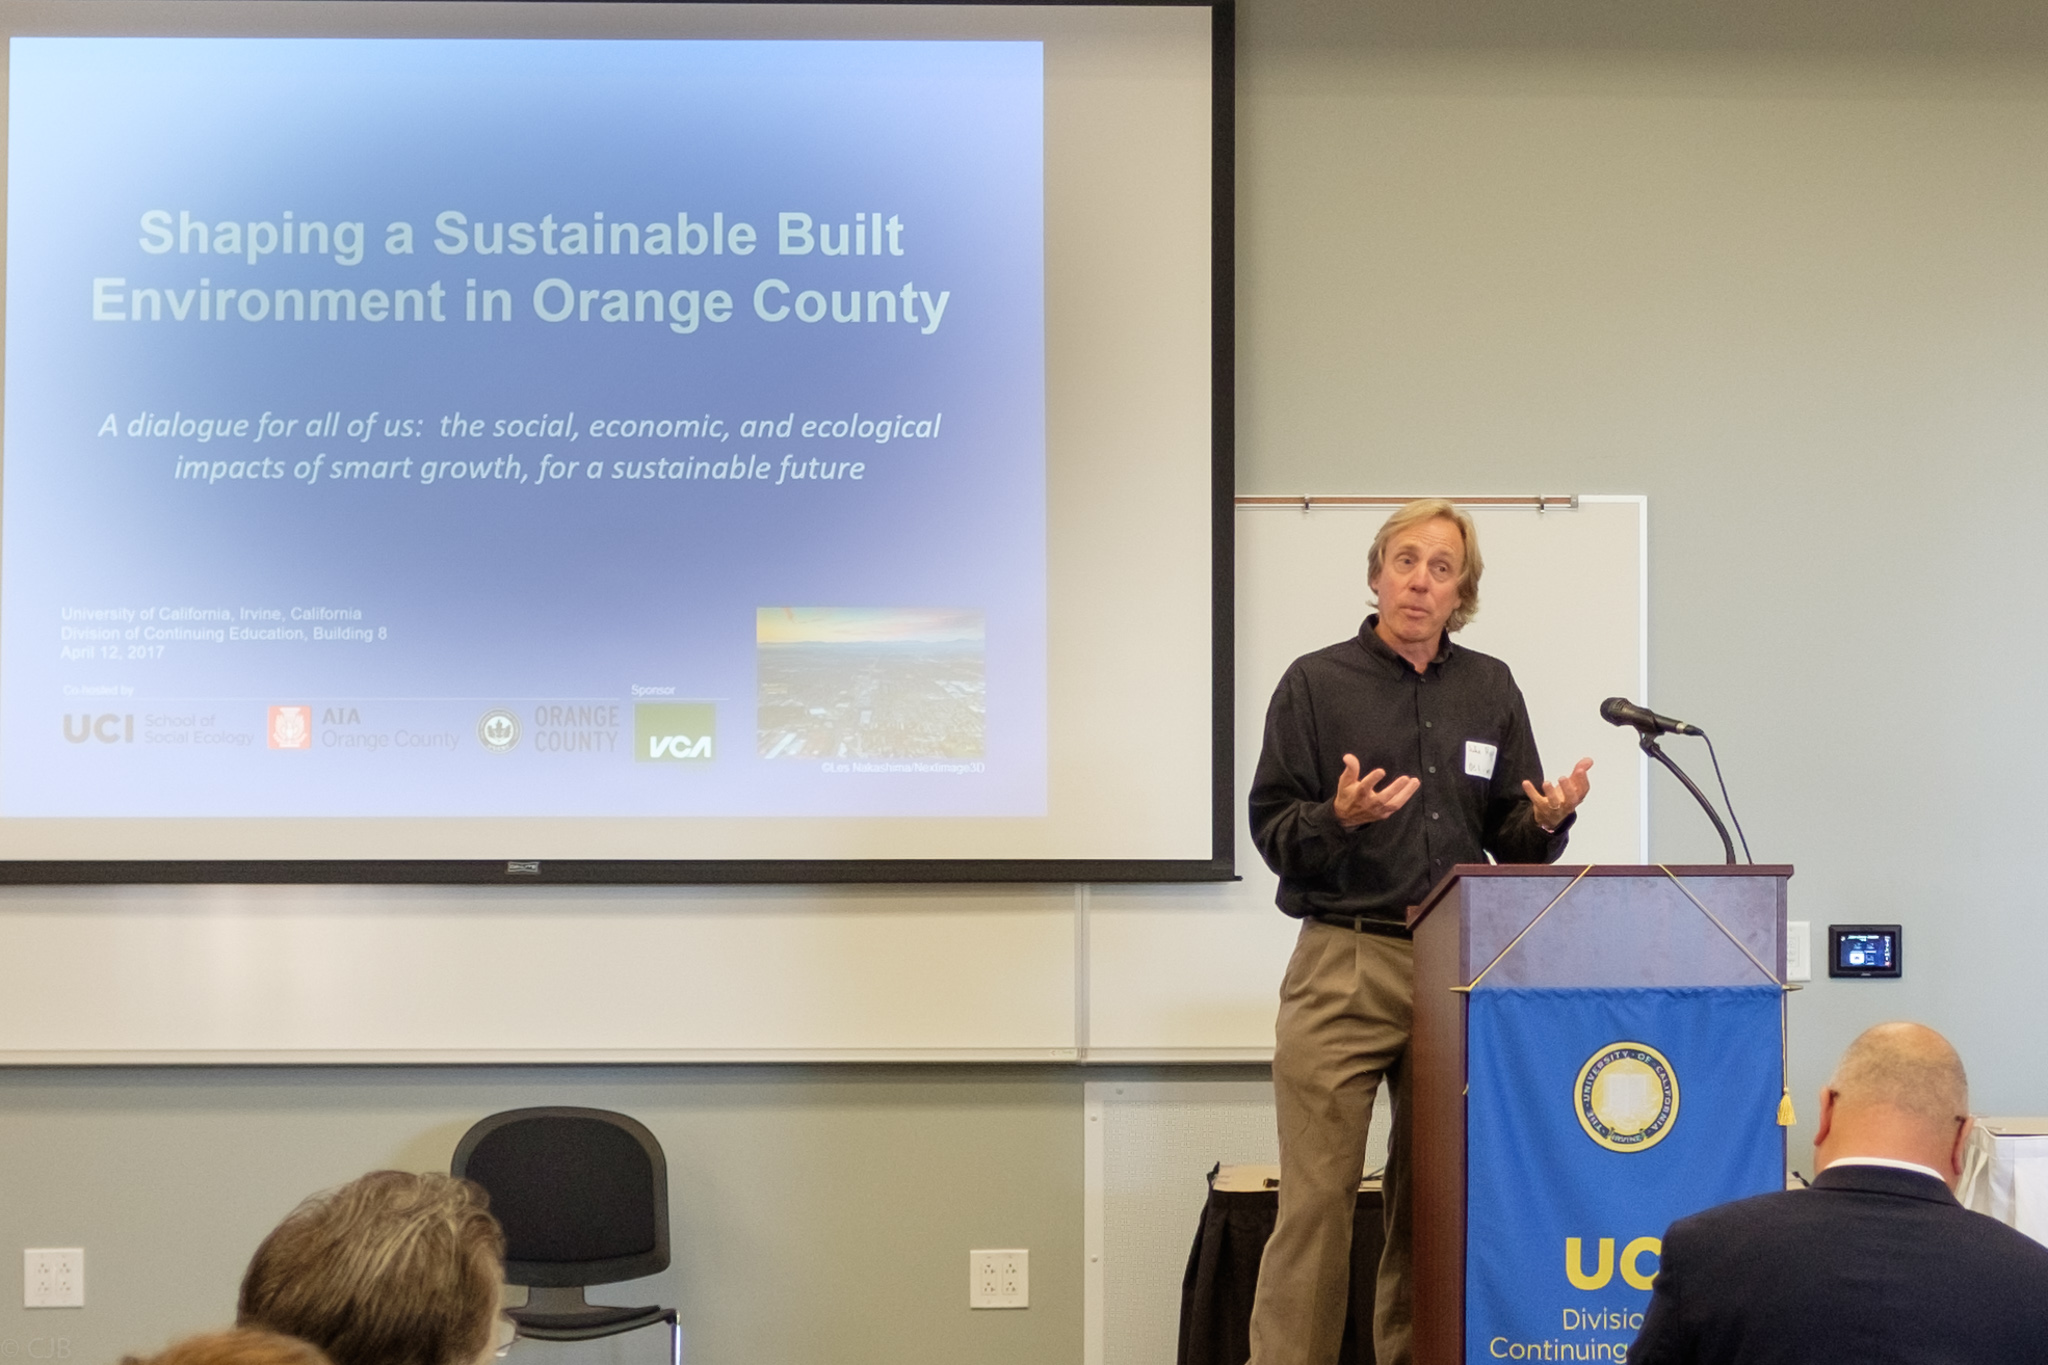 Shaping a Sustainable Built Environment in Orange County